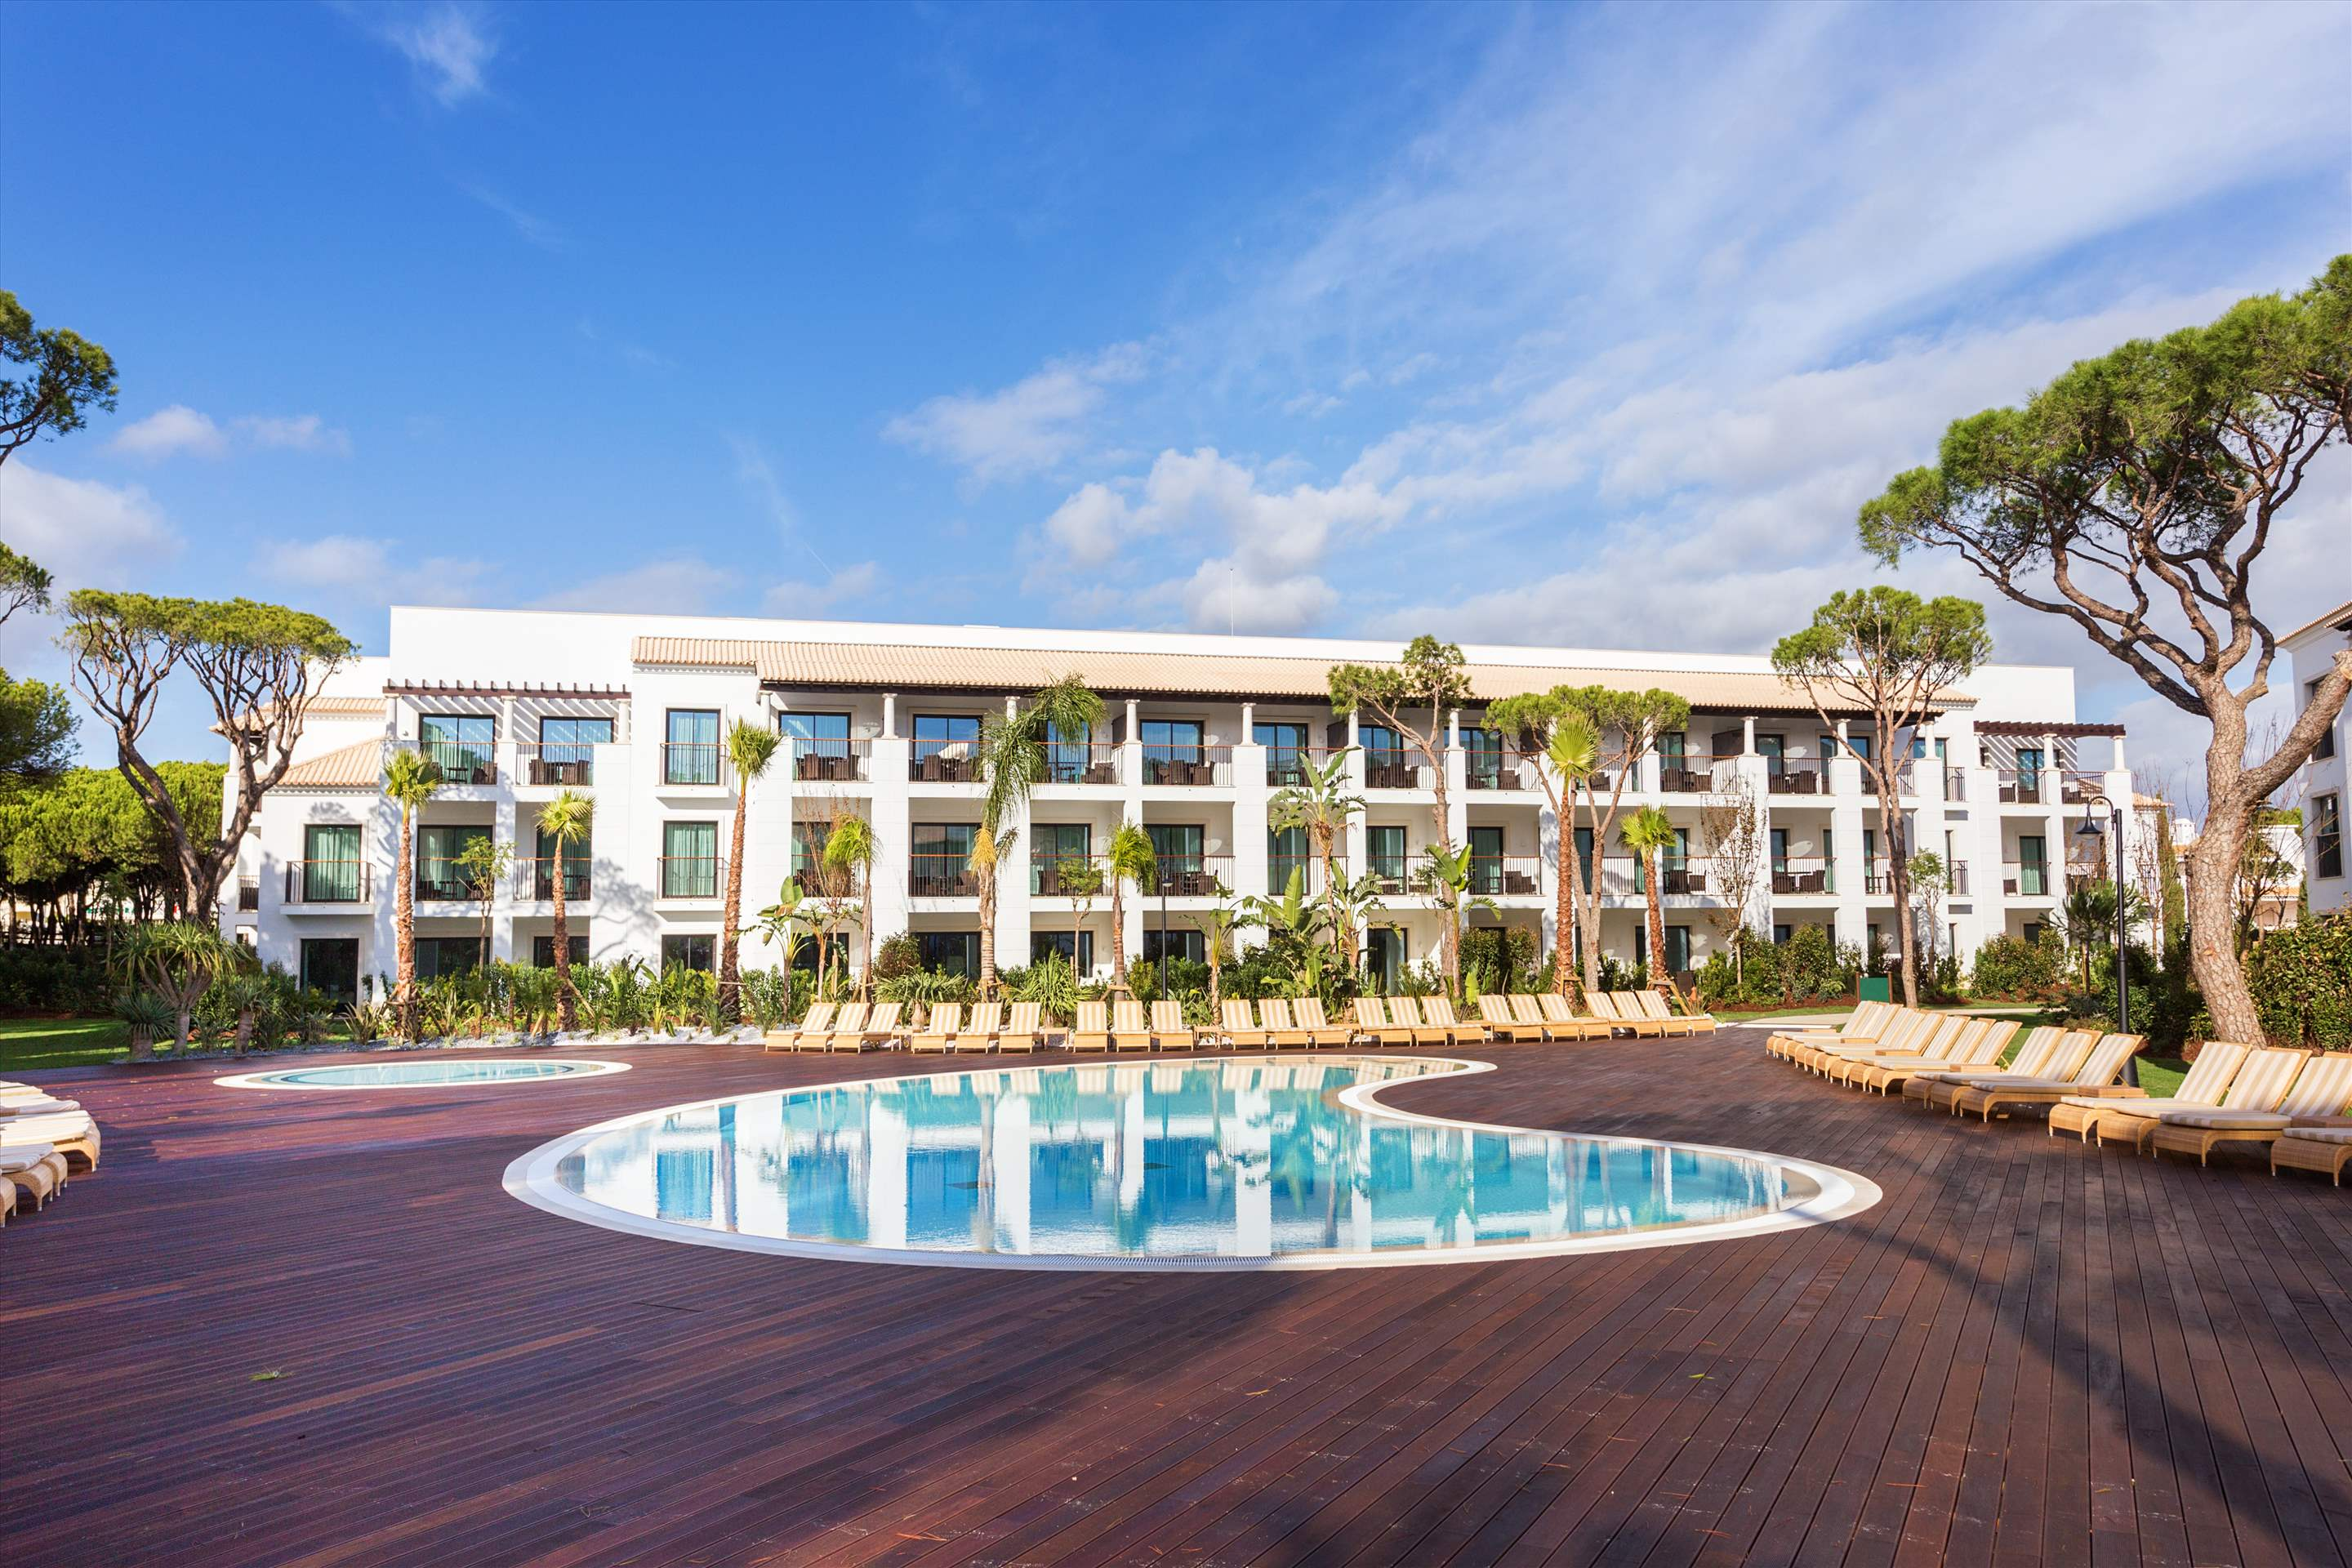 Pine Cliffs Gardens, One Bedroom Suite, S/C Basis, 1 bedroom apartment in Pine Cliffs Resort, Algarve Photo #1